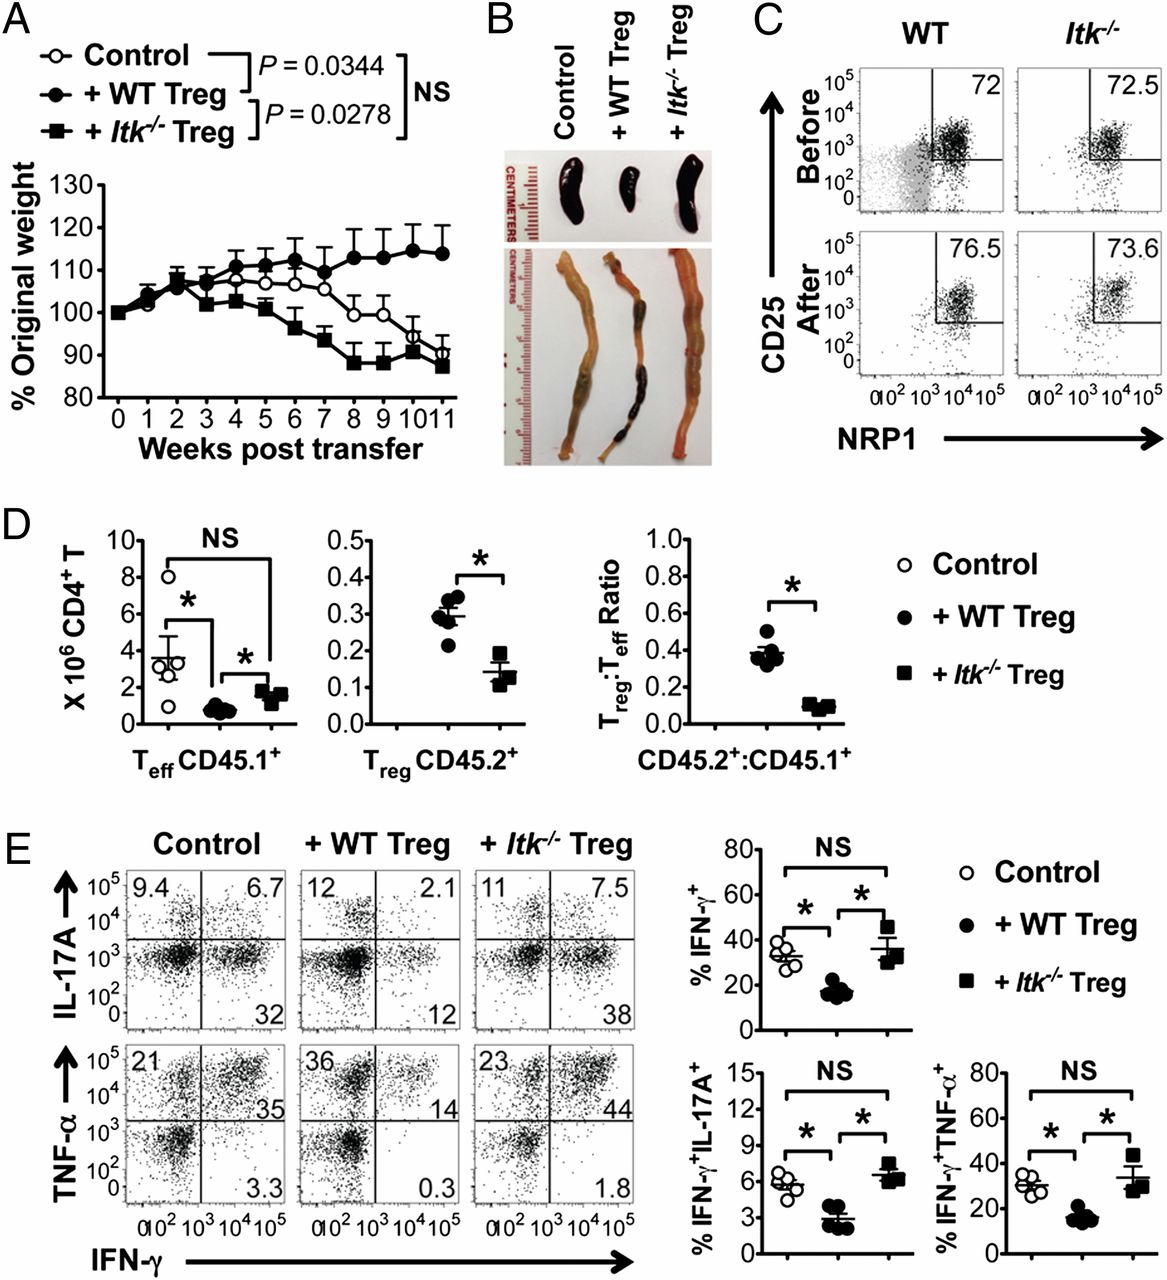 IL-2–Inducible T Cell Kinase Tunes T Regulatory Cell